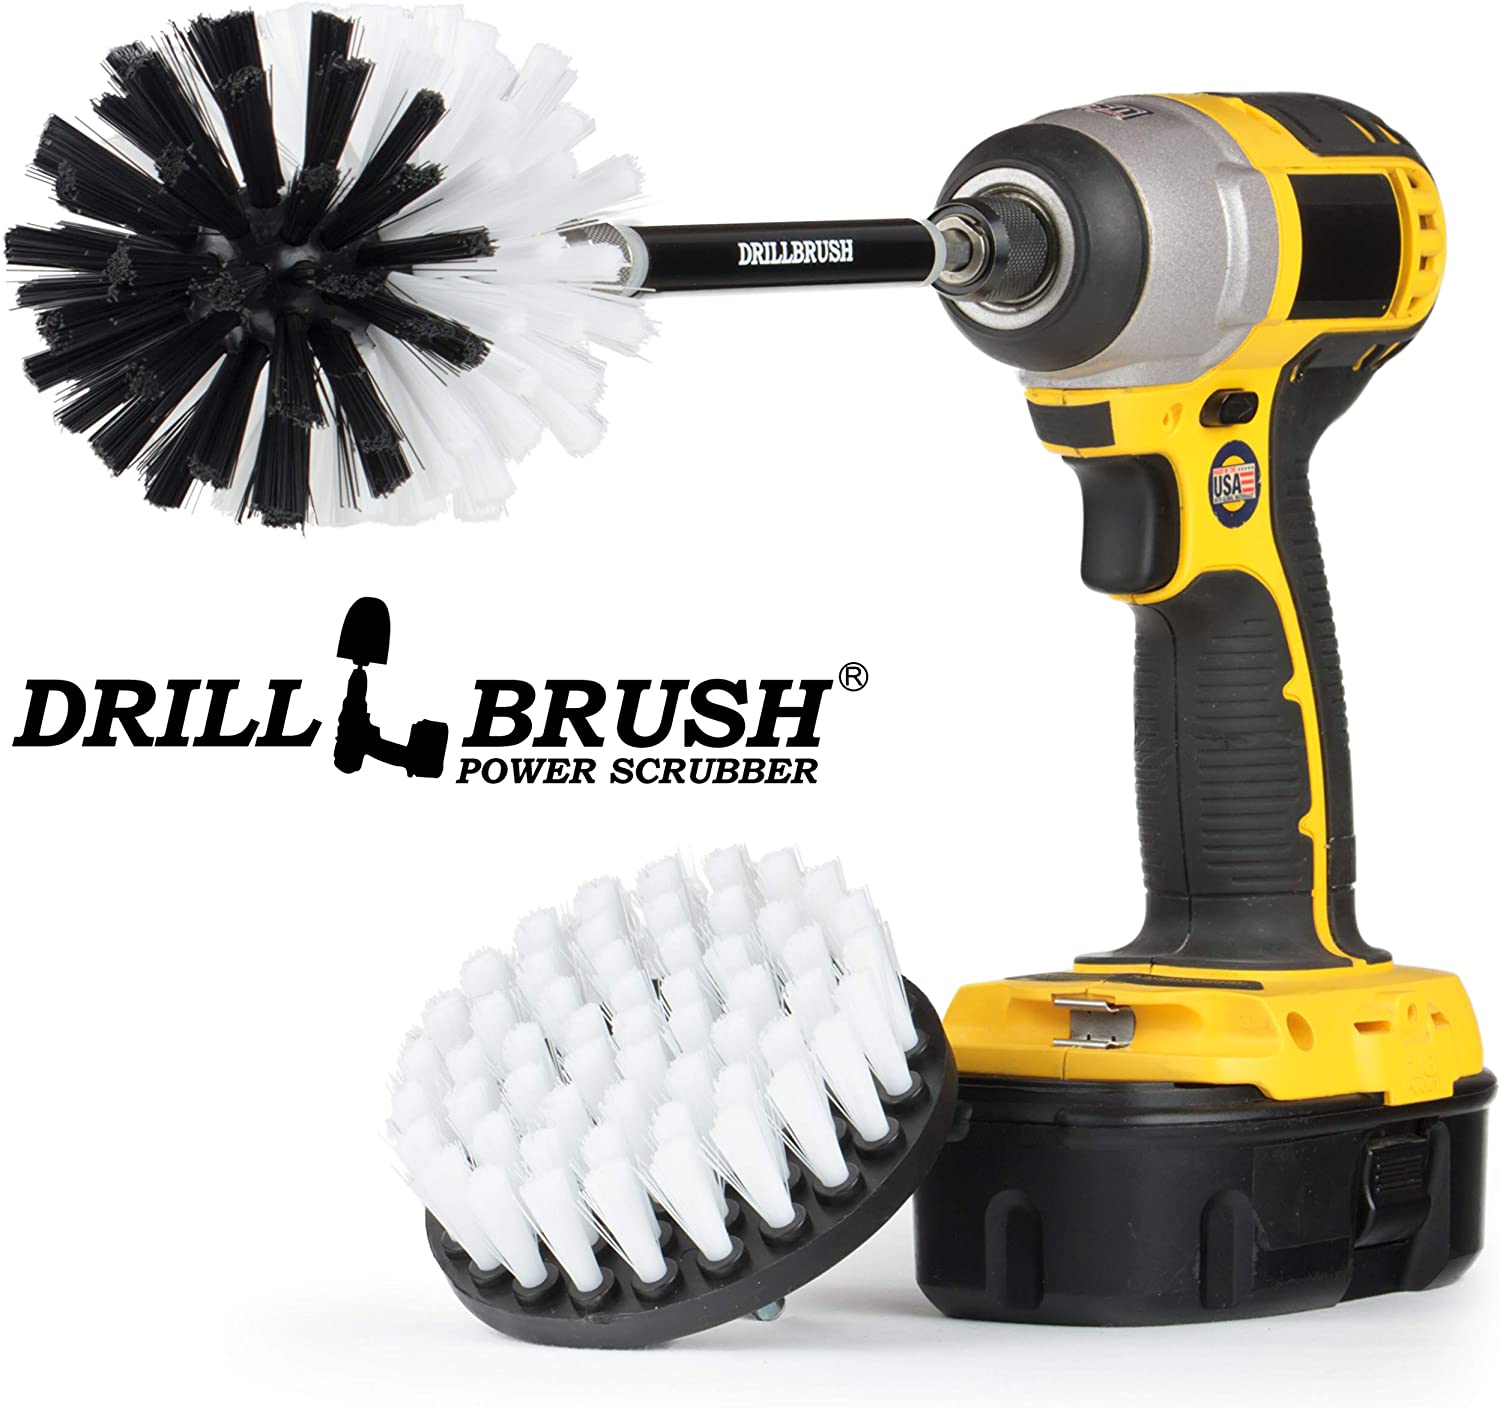 Drill Brush Power Scrubbing Brush Kit with Extension - Bathroom Accessories - Shower Cleaner - Bidet - Toilet Brush- Grout Cleaner - Carpet Cleaner - Tile, Sink, Bathtub (Automotive Soft-White)